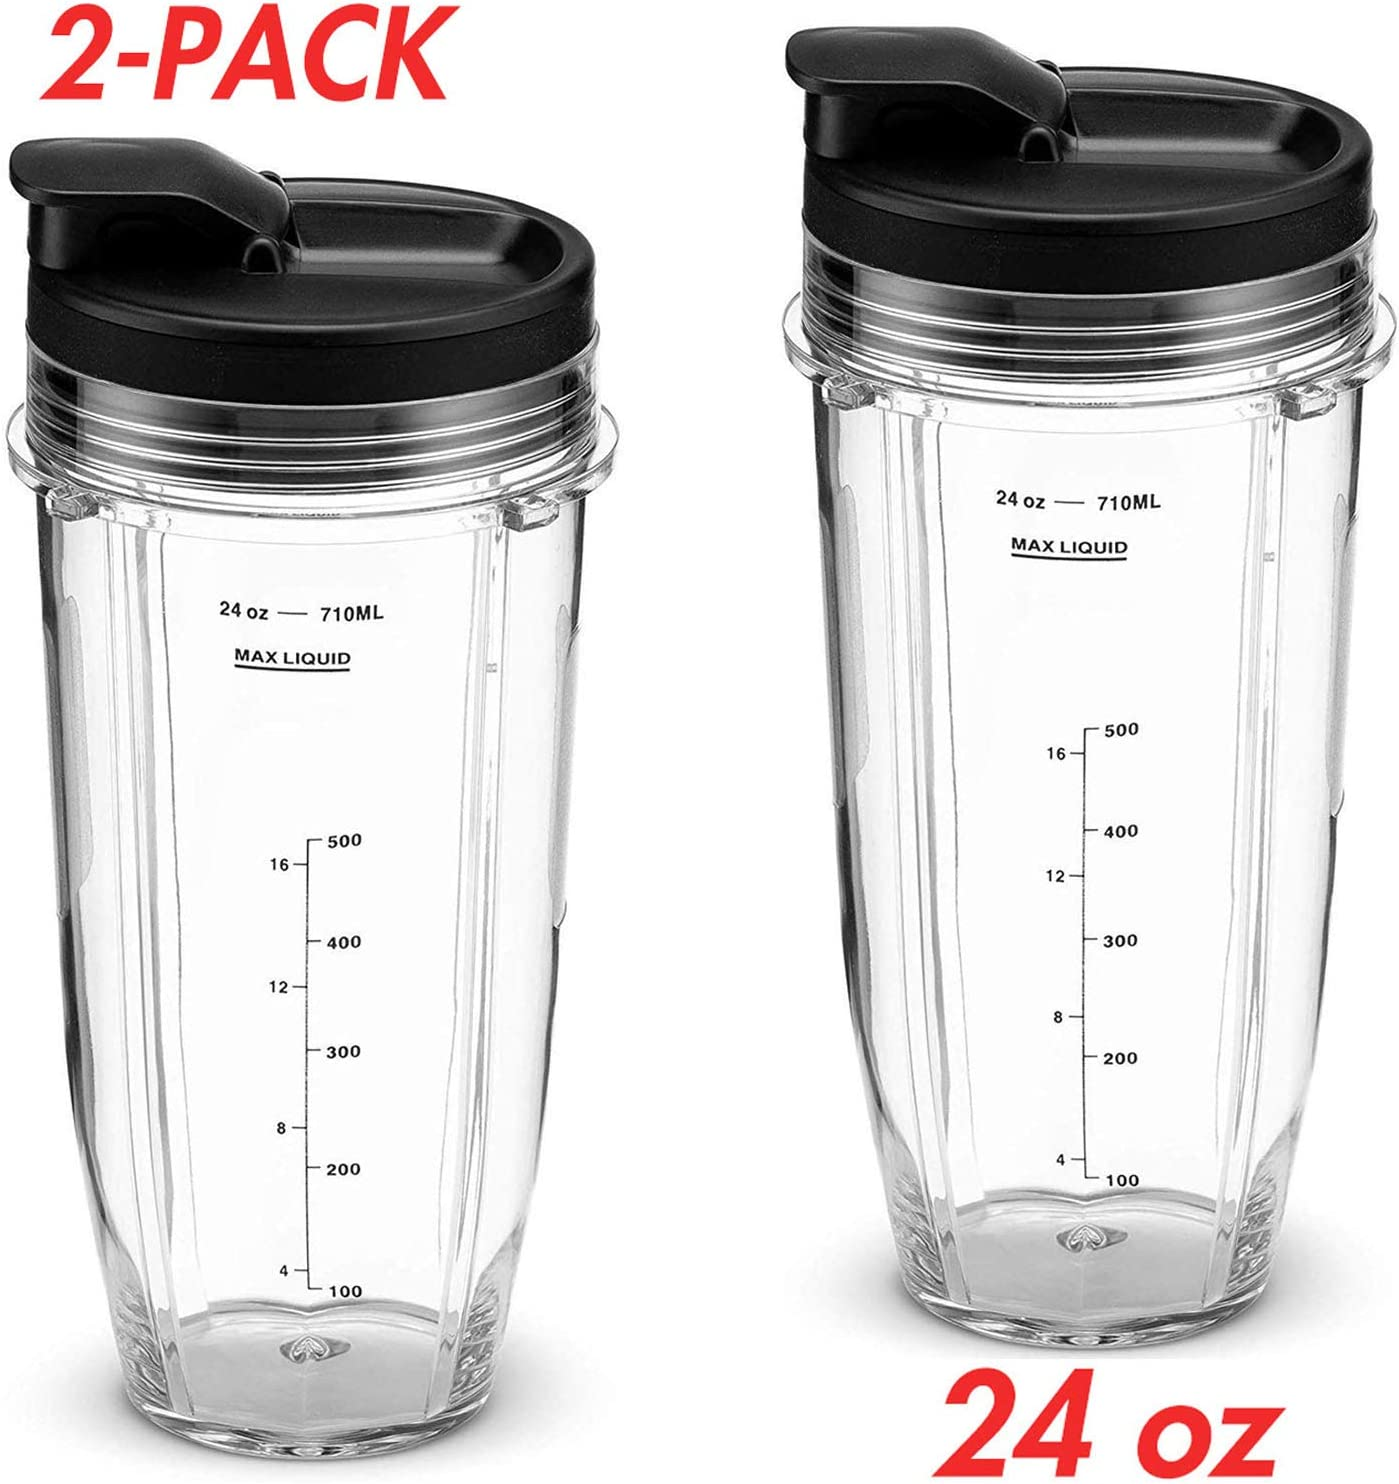 Pack of 2 Nutri Ninja Replacement Parts 24 oz Cups+Lids Compatible with BL480, BL490, BL640, BL680 Auto IQ Series Blenders